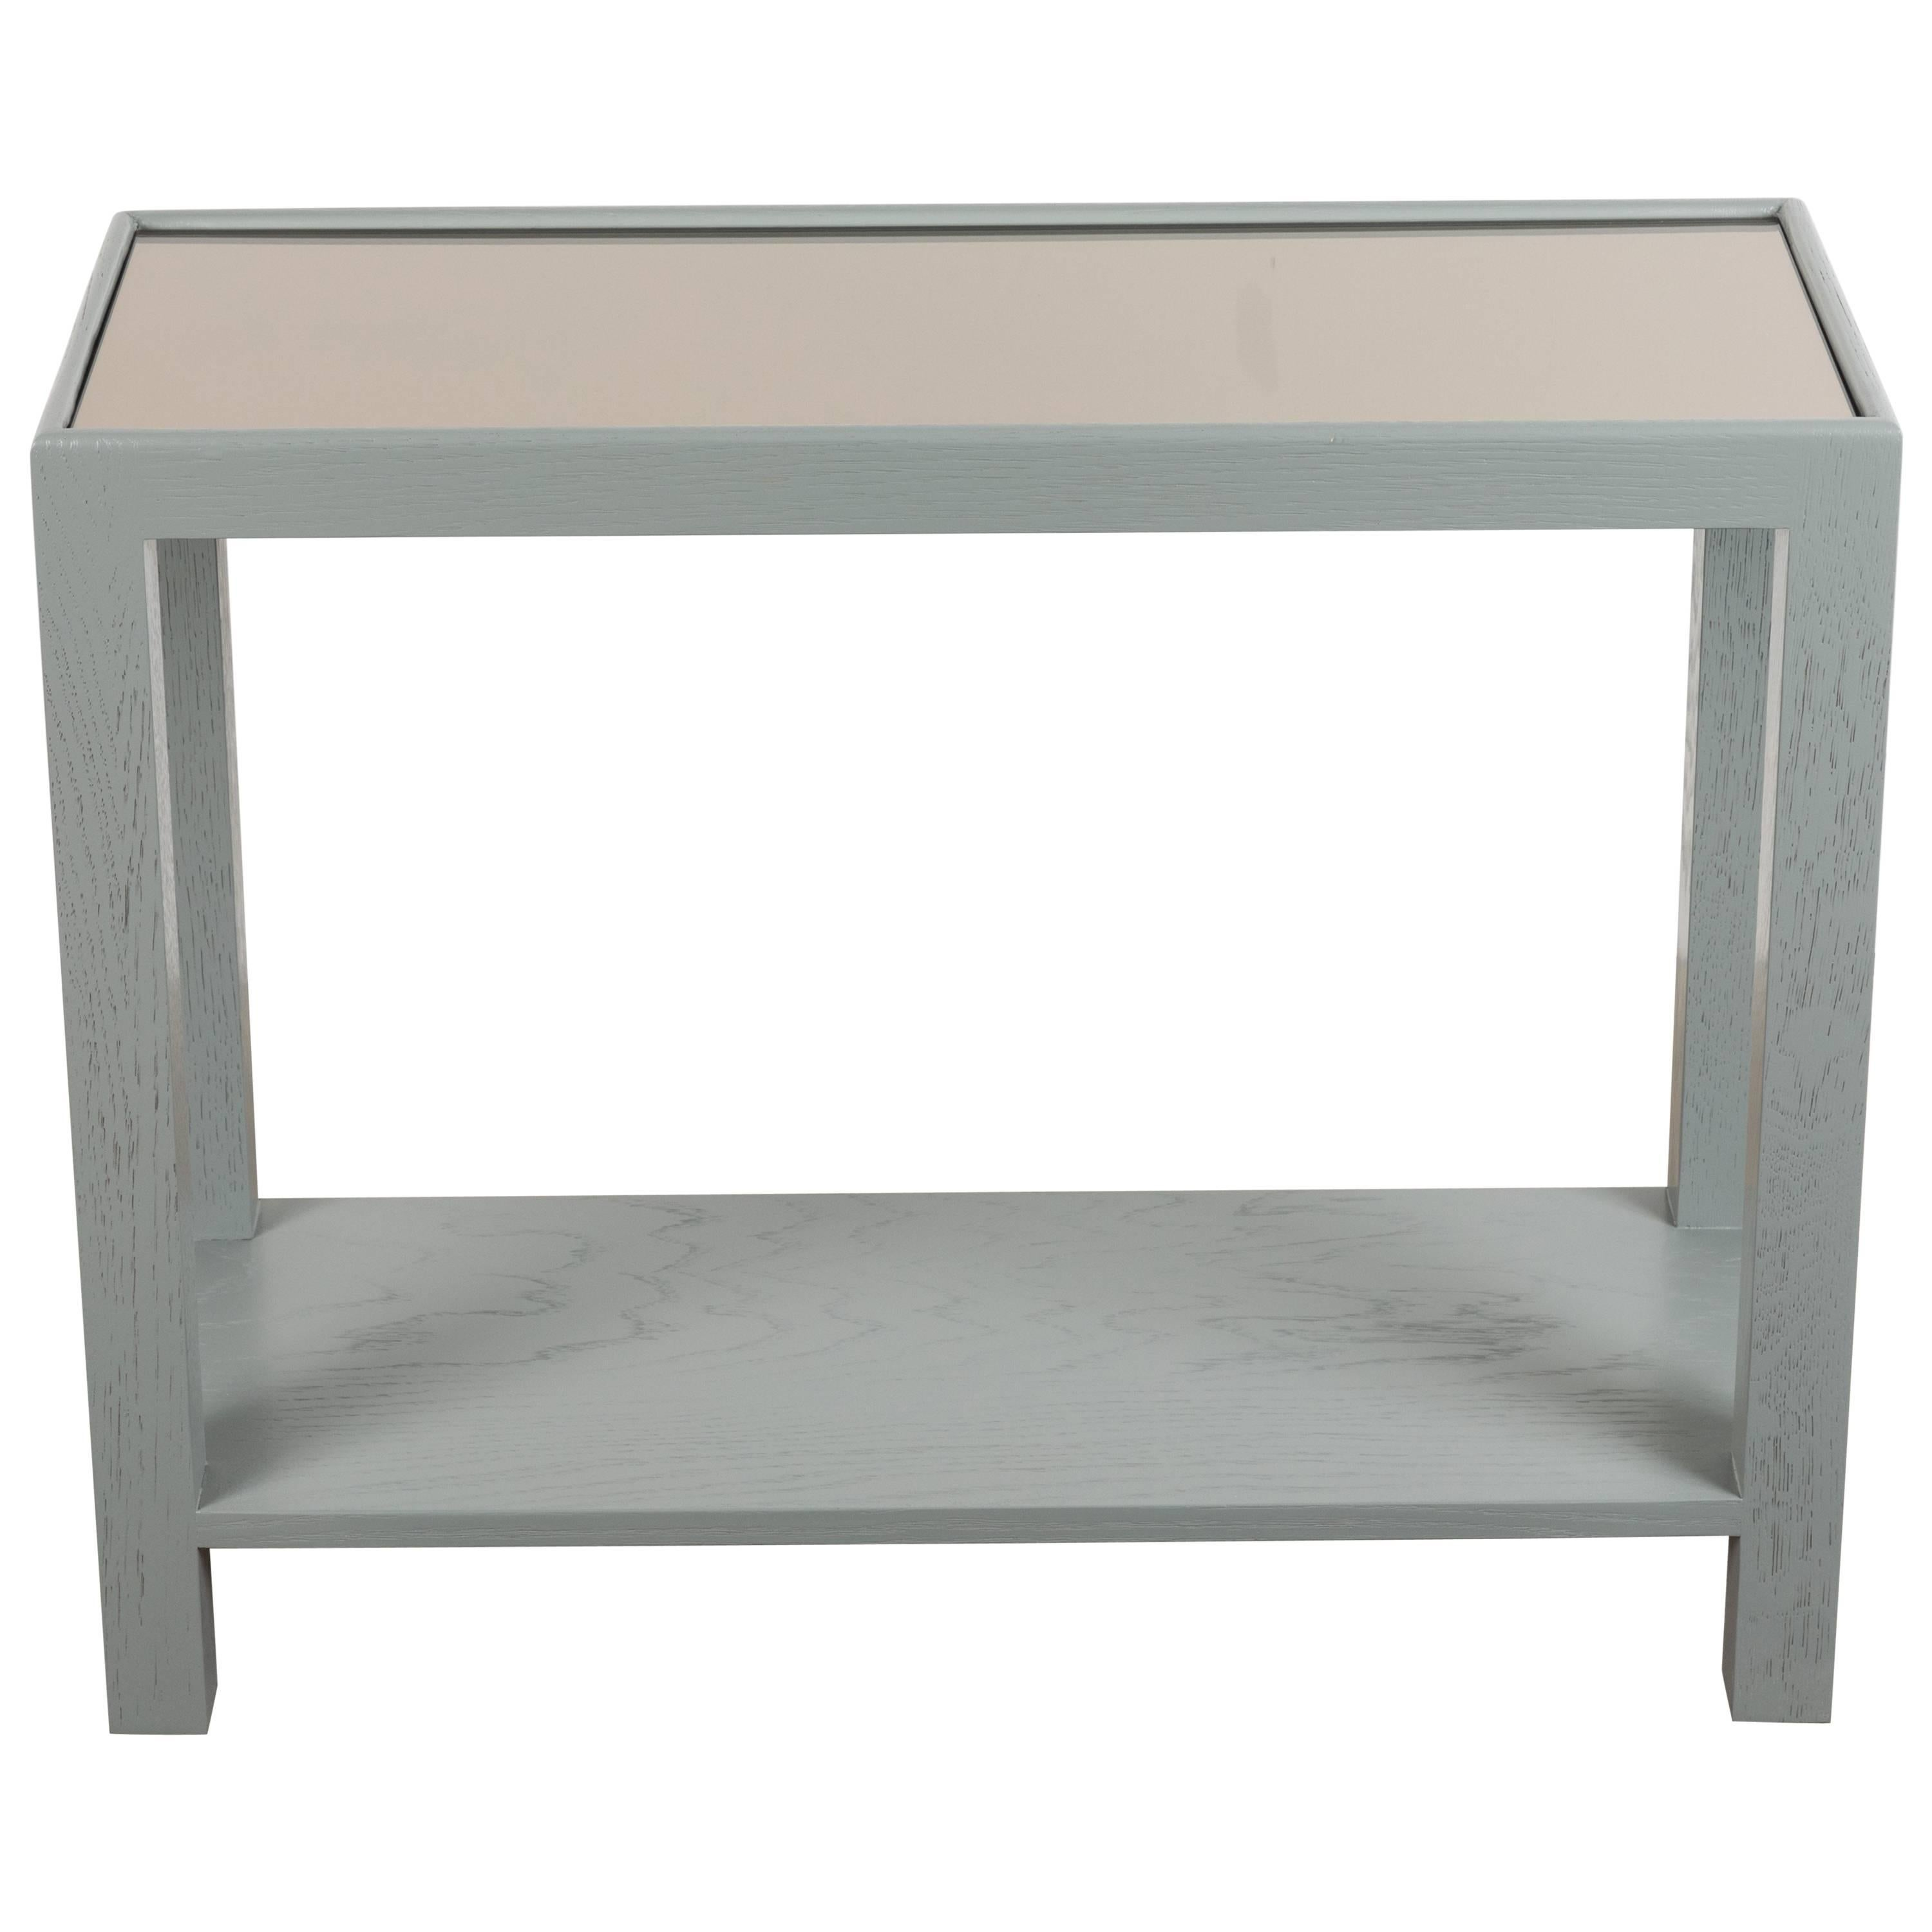 Rectangle narrow side table by lawson fenning for sale at 1stdibs